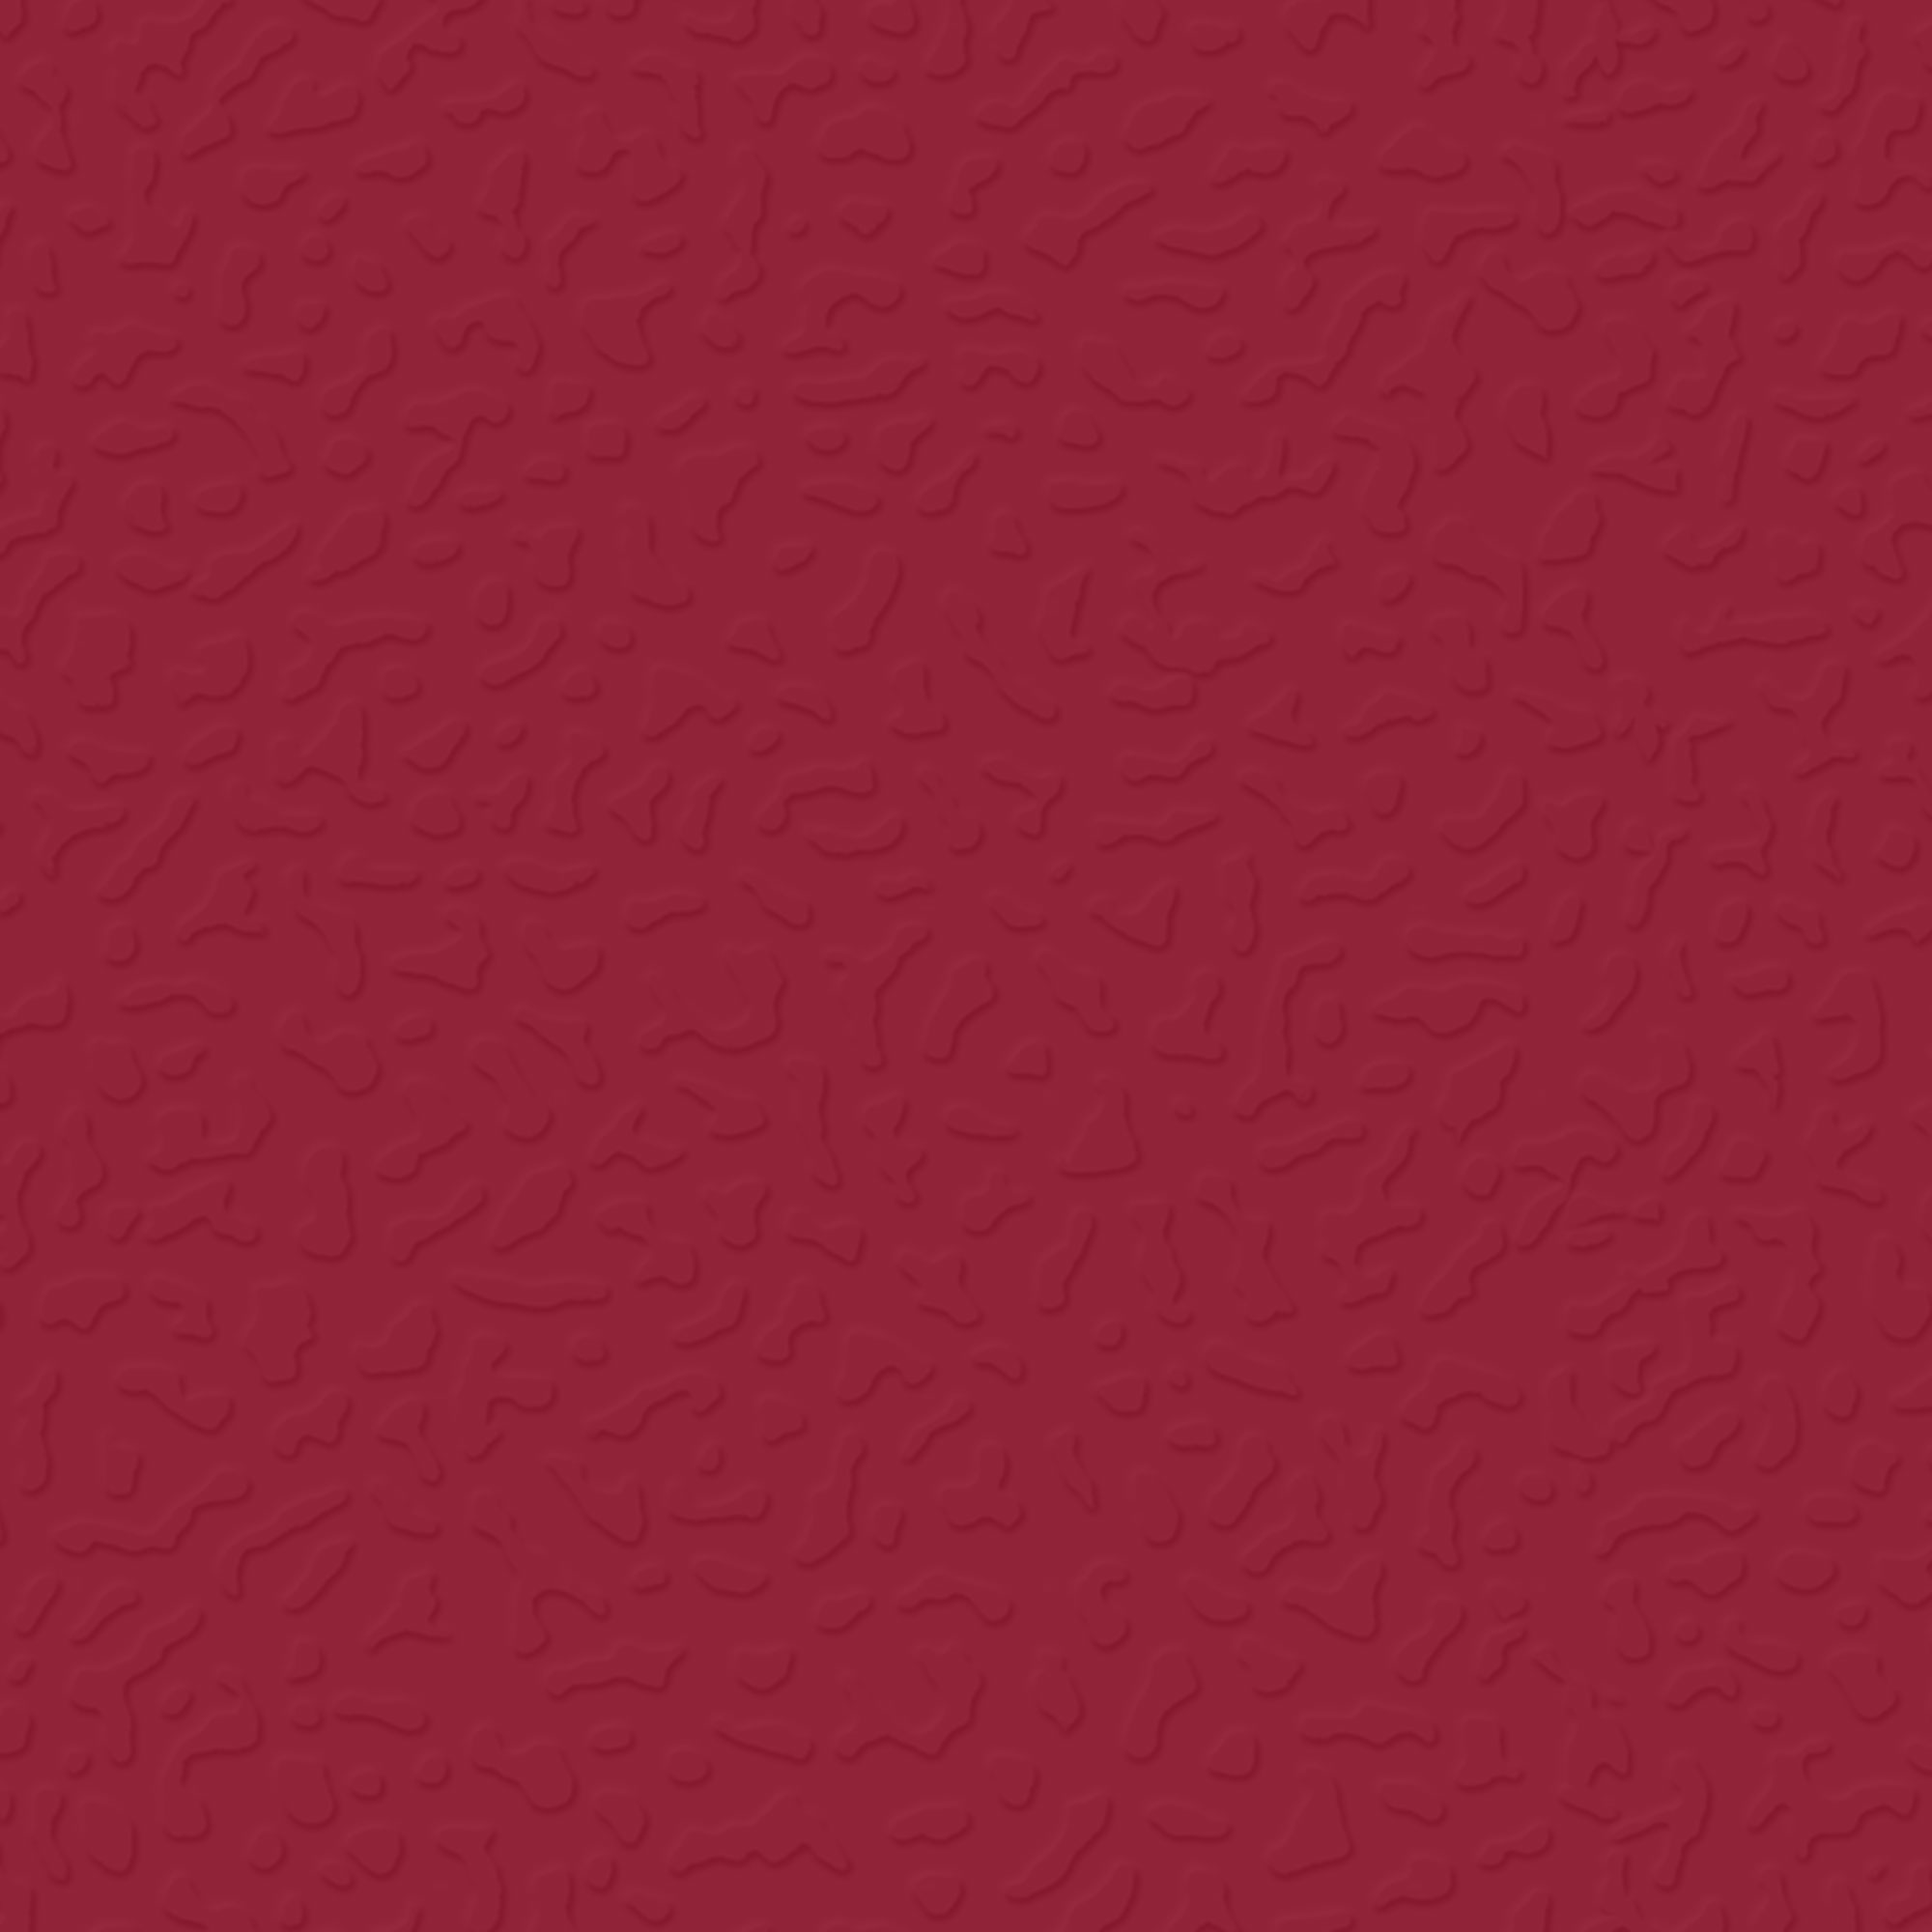 Roppe Rubber Tile 900 - Textured Design (993) Red LB996186